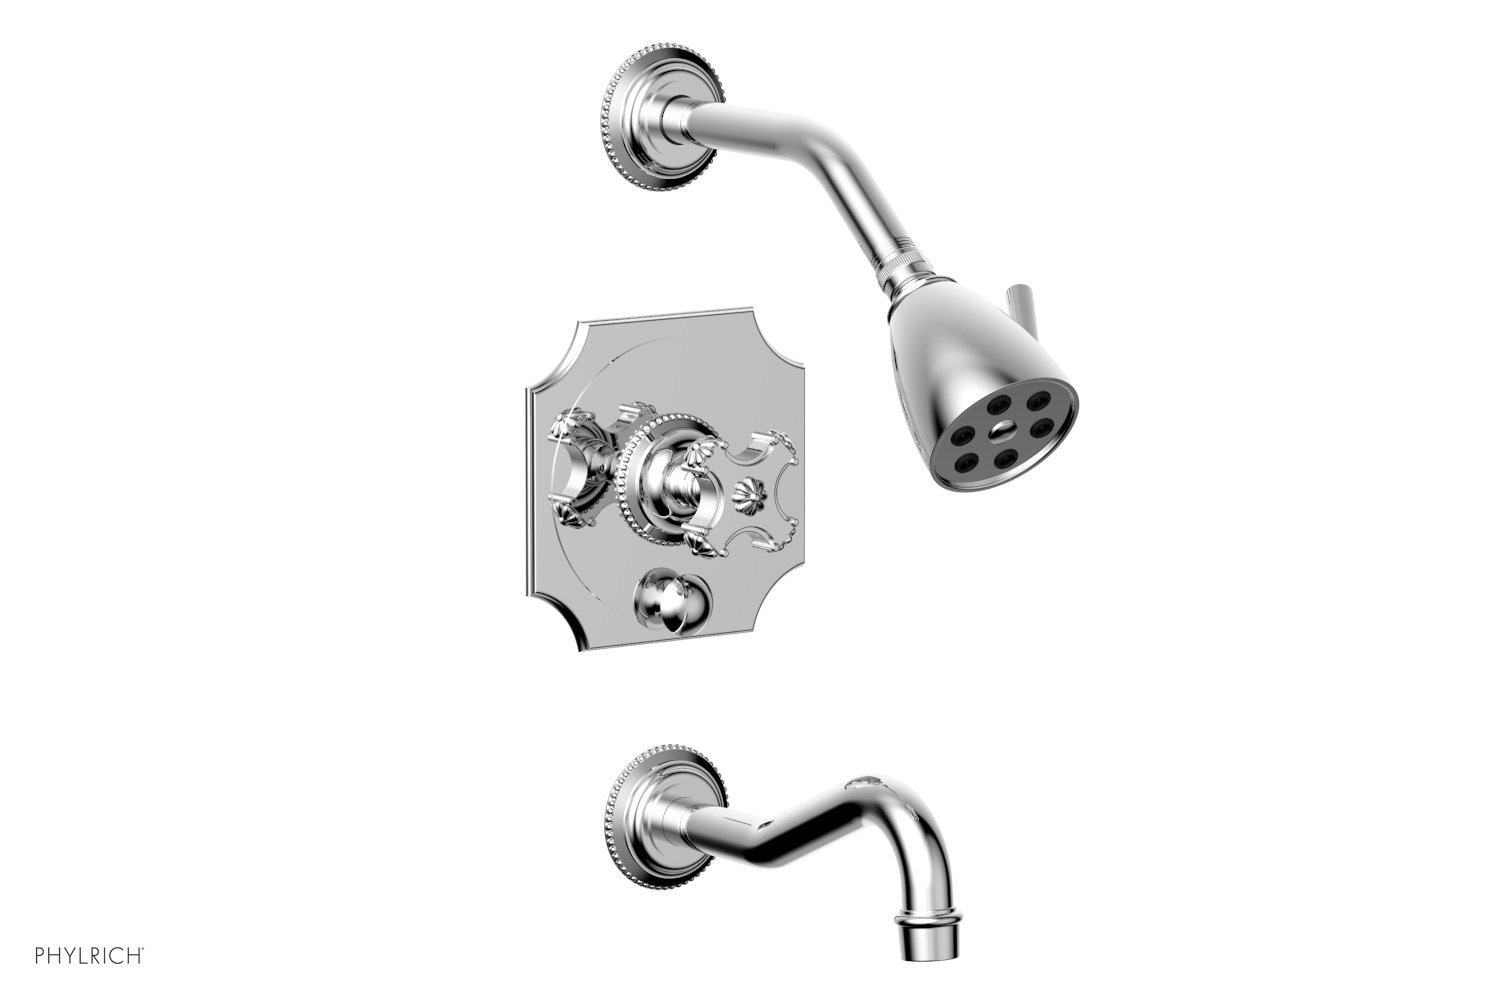 PHYLRICH 162-26 MARVELLE WALL MOUNT PRESSURE BALANCE TUB AND SHOWER SET WITH CROSS HANDLE